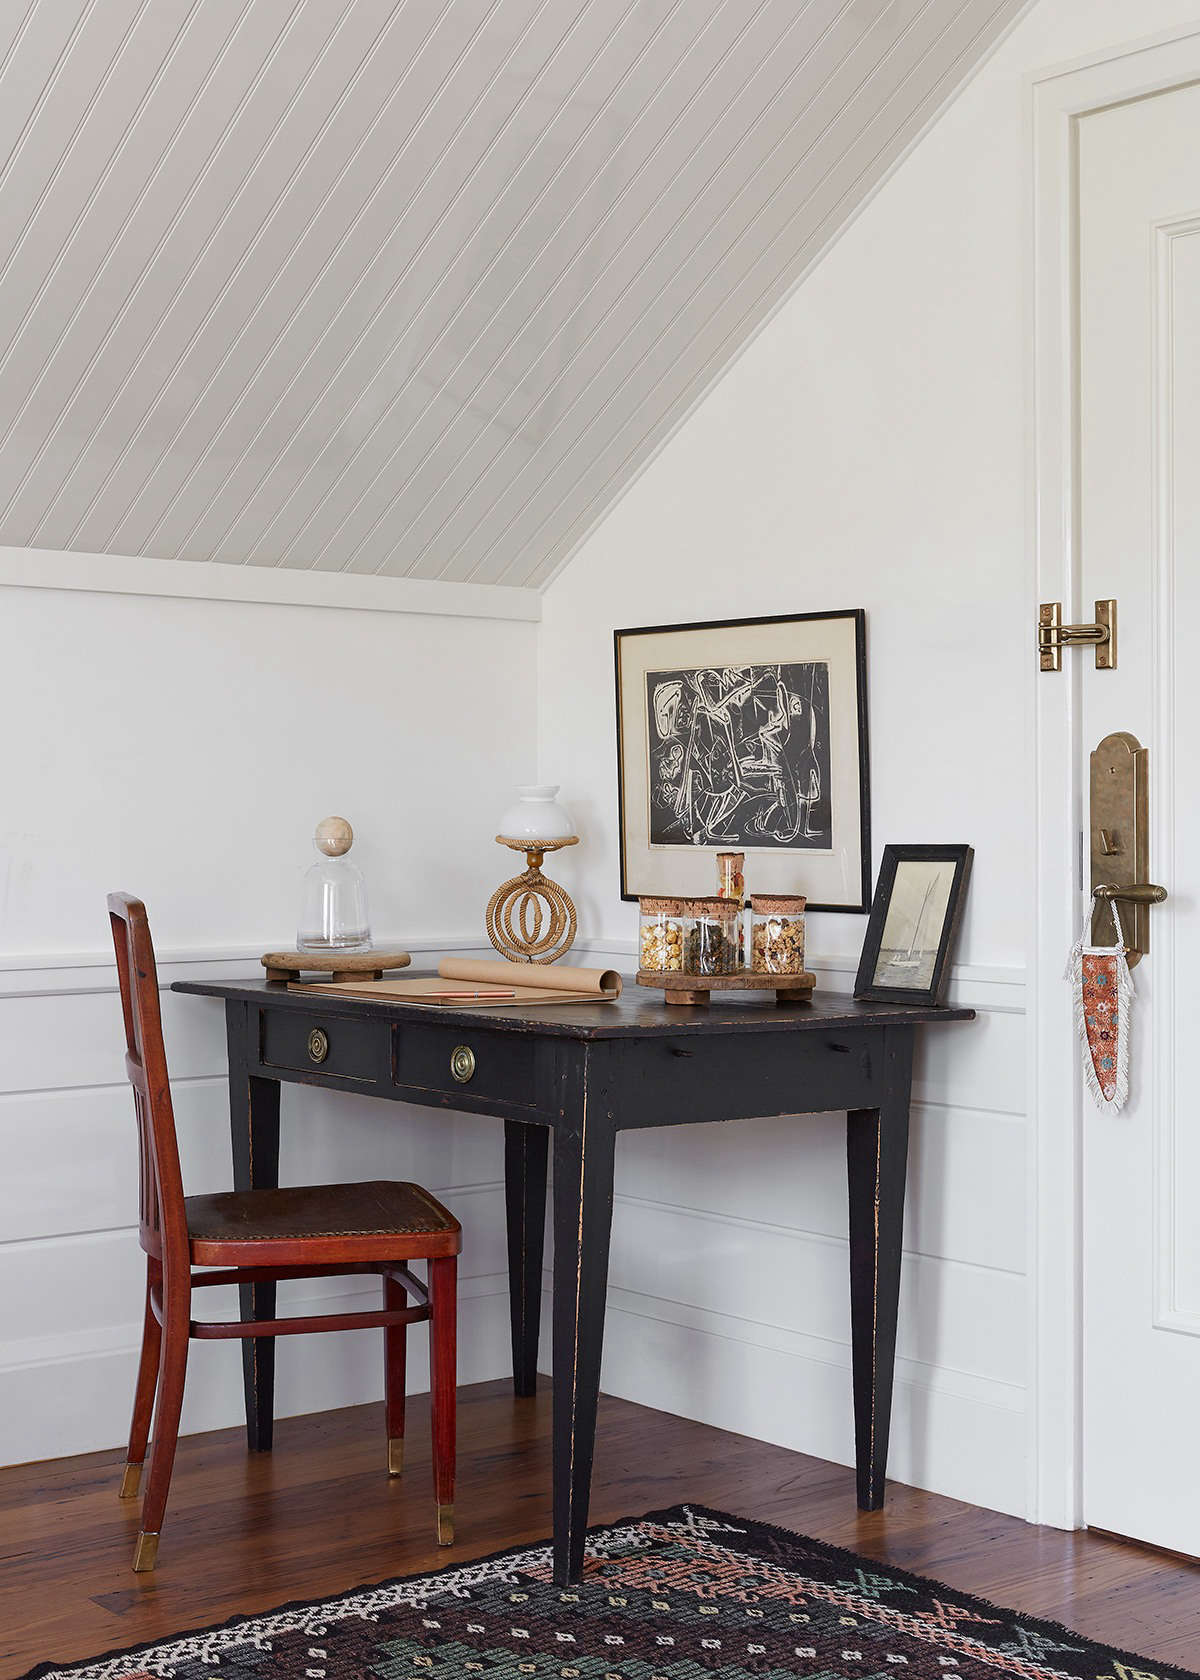 At Greydon House on Nantucket, paneling along the wall, as well as beadboard on the ceiling, create a greater sense of height in the Broad Suite. See Greydon House: A Seafarer's Inn (with Maritime Finds) on Old Nantucket.